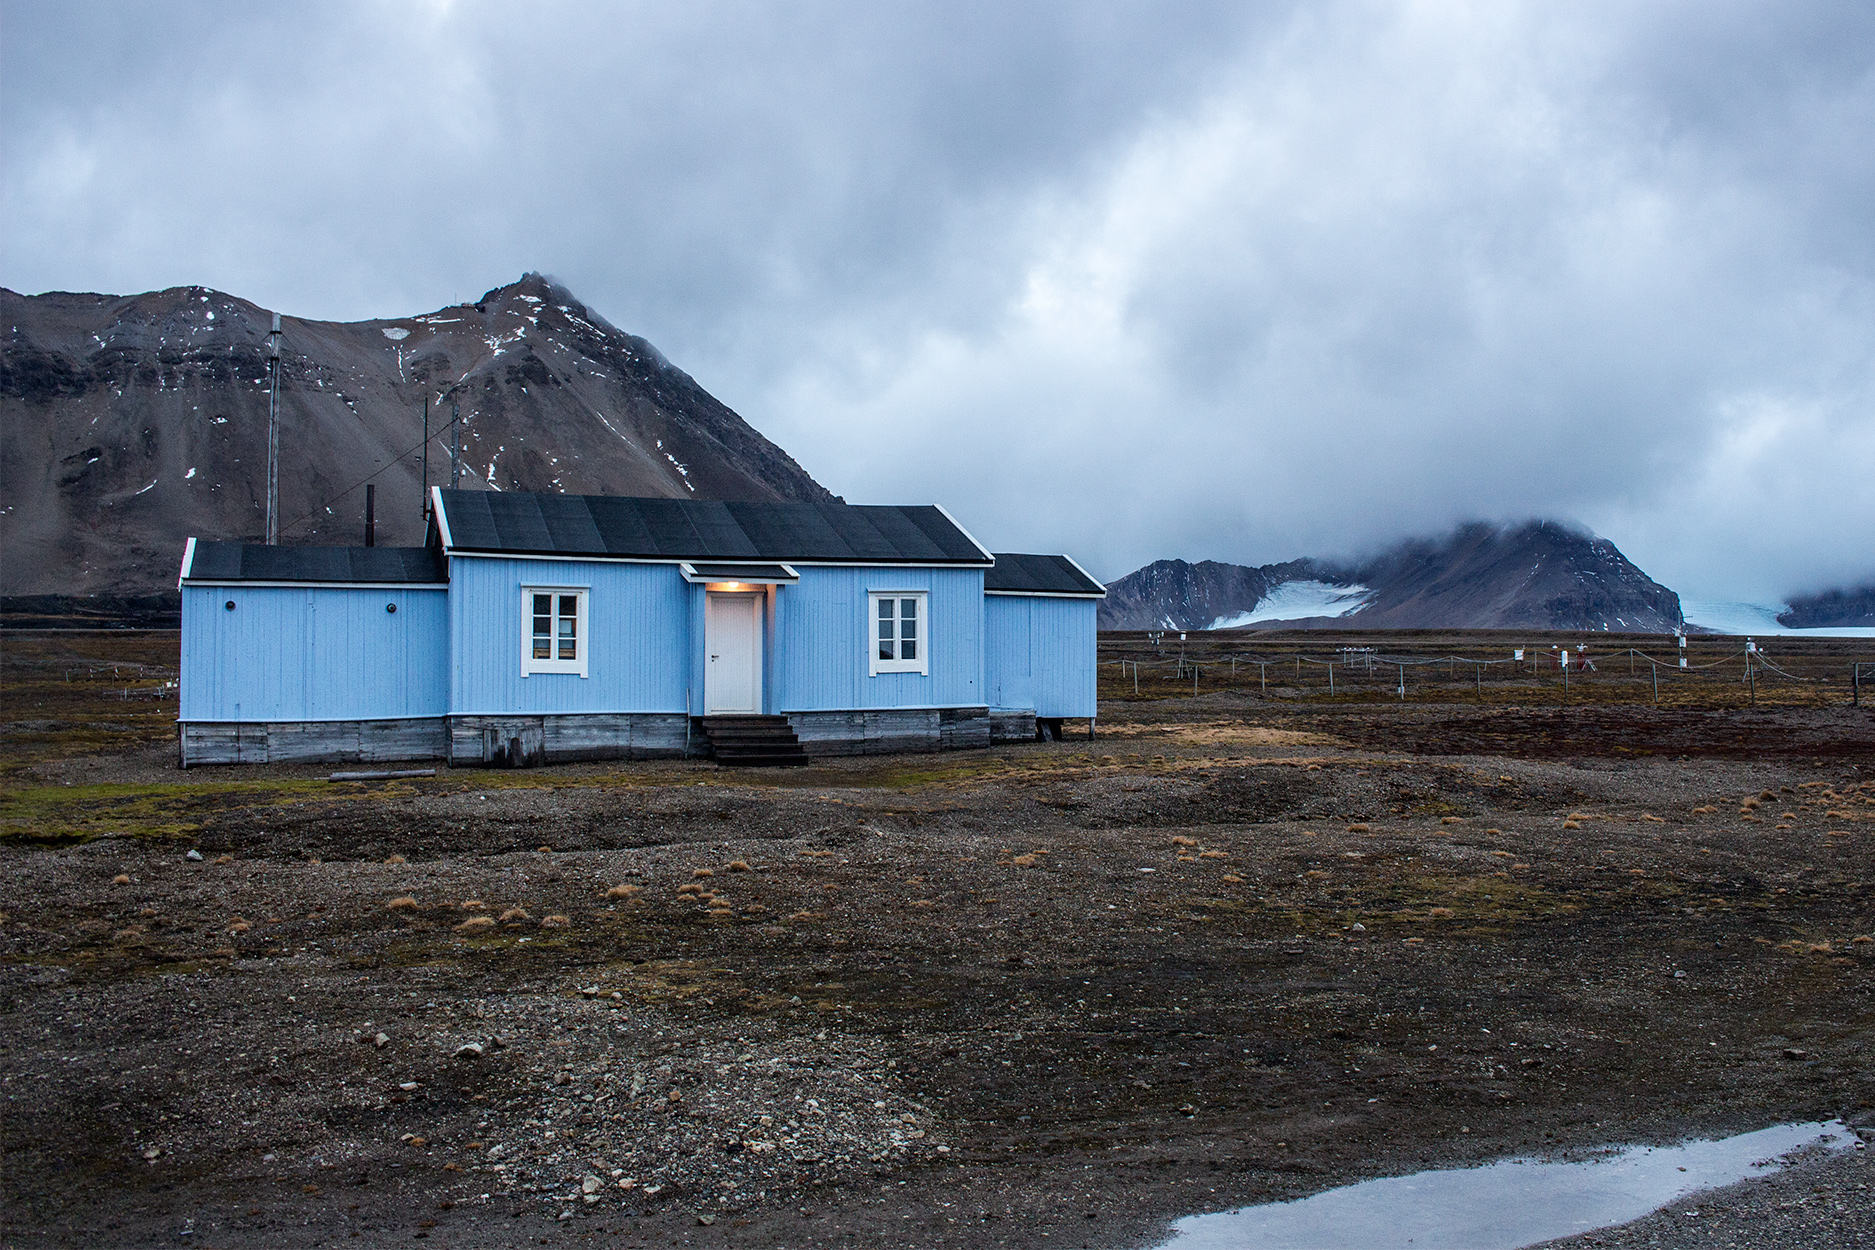 Ny Ålesund settlement on Svalbard